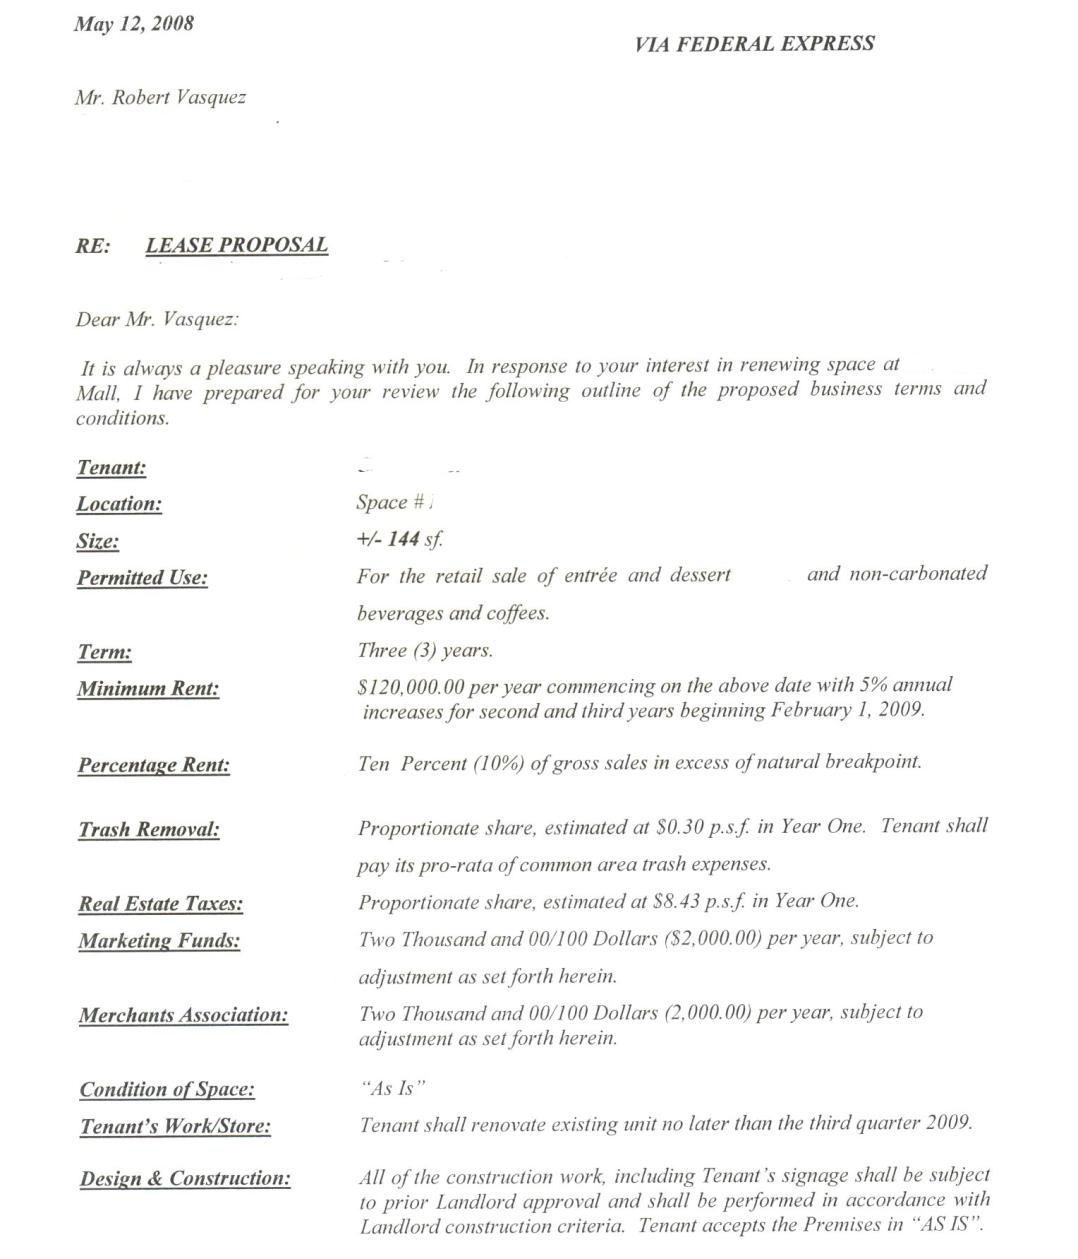 End Of Lease Letter Template - Intent to Break Lease Letter Fice Space Template Property